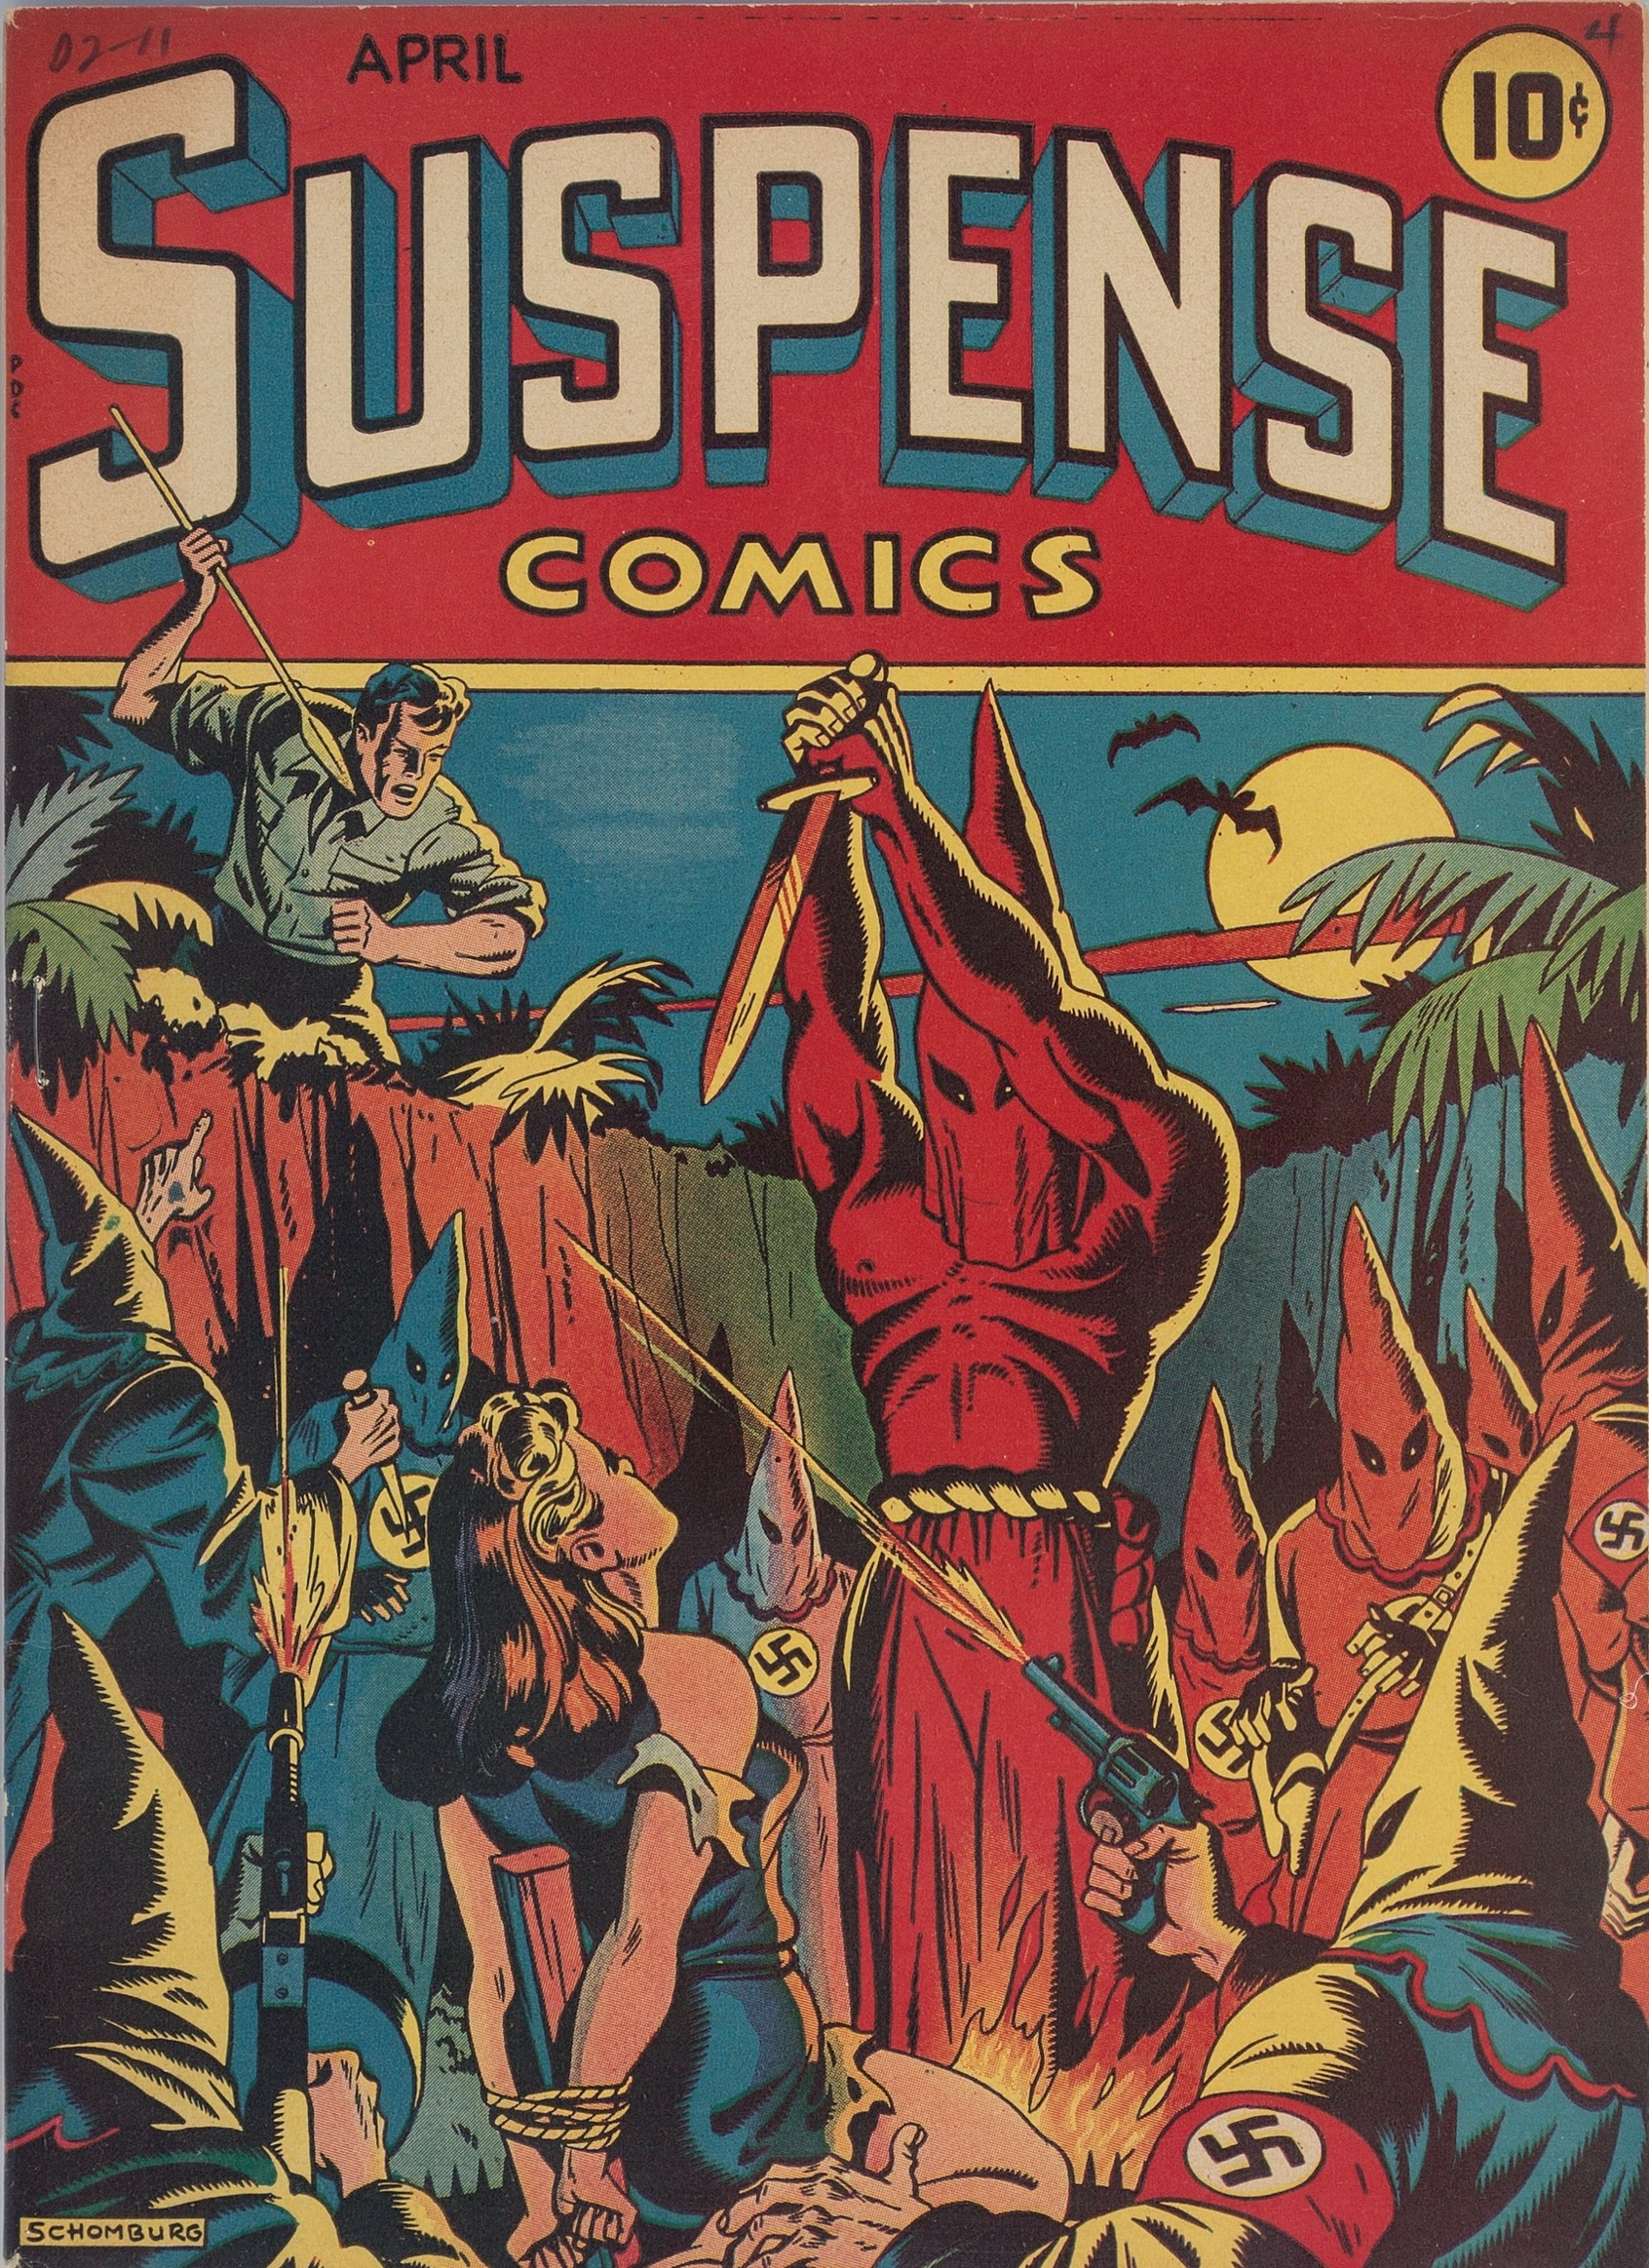 Suspense Comics #3 from 1944